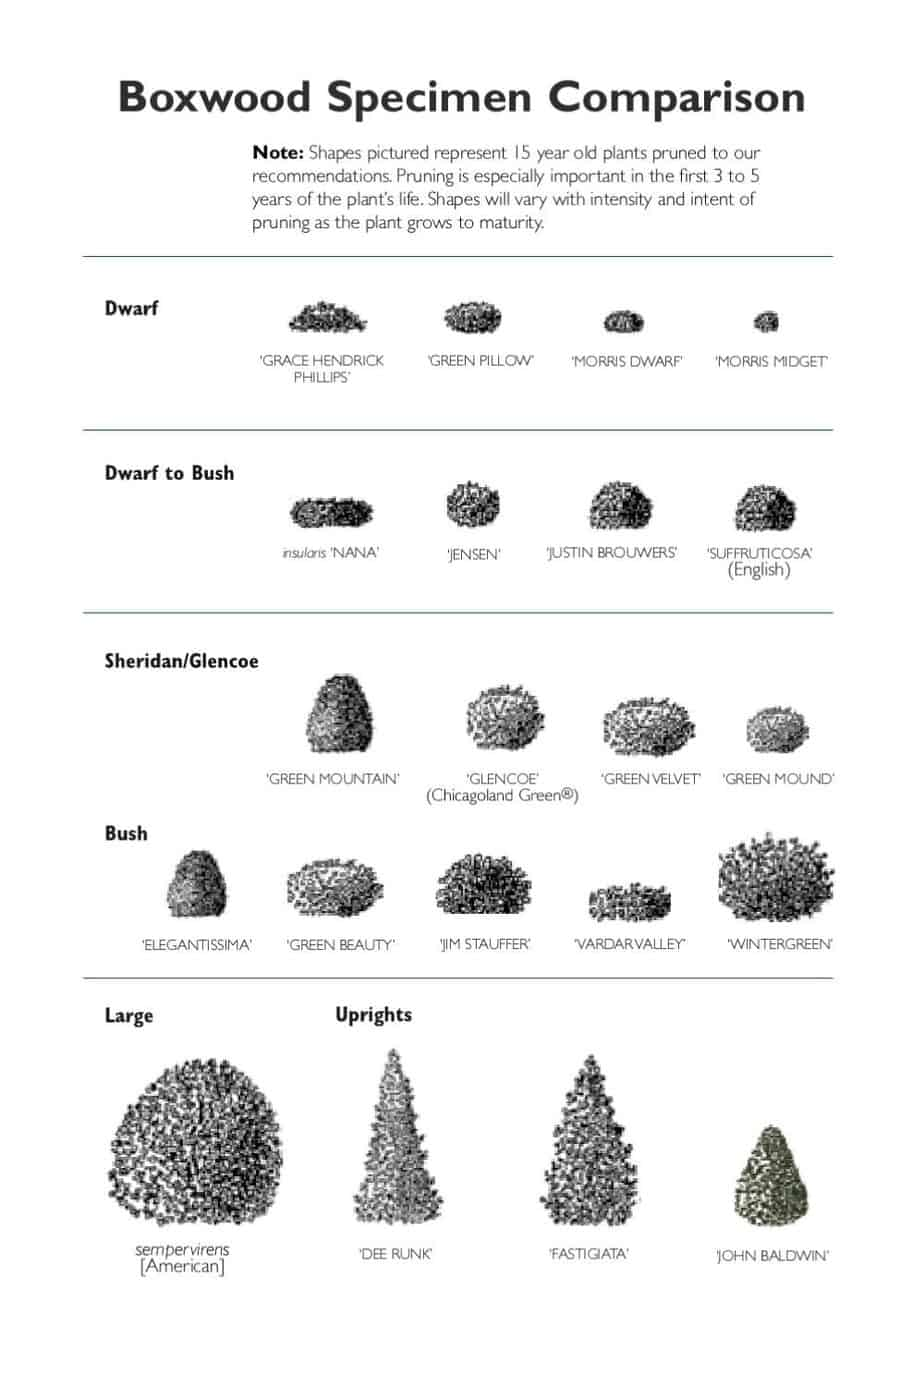 Boxwood specimen comparison drawing.